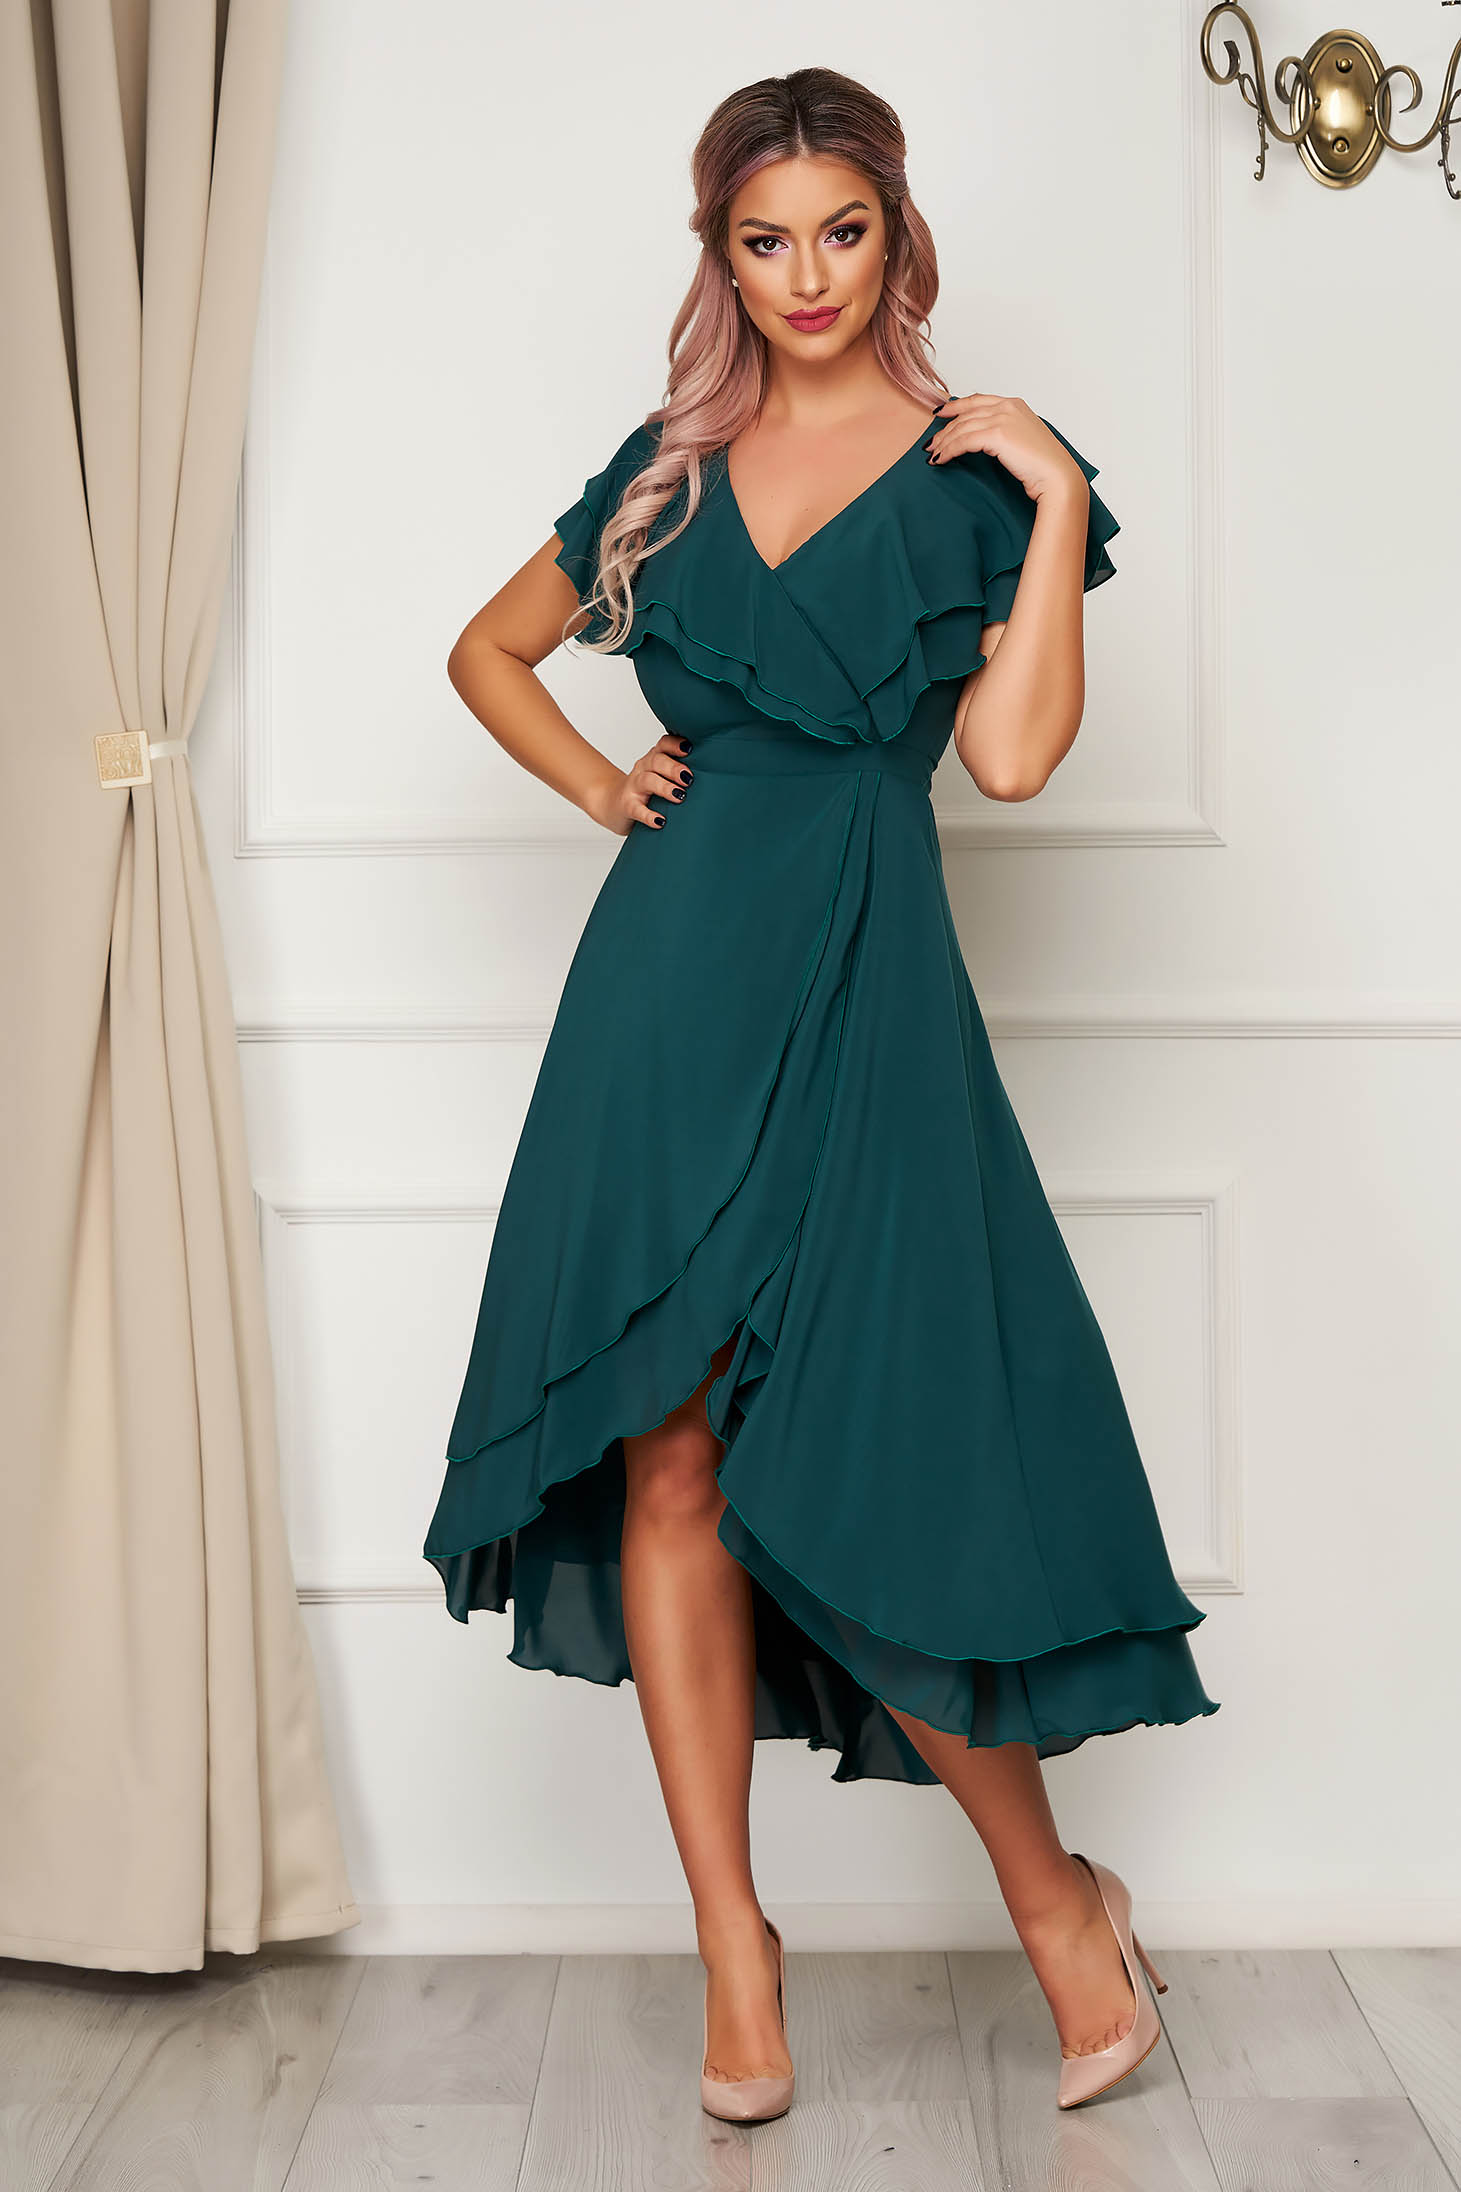 Dress StarShinerS green long occasional from veil fabric with ruffle details